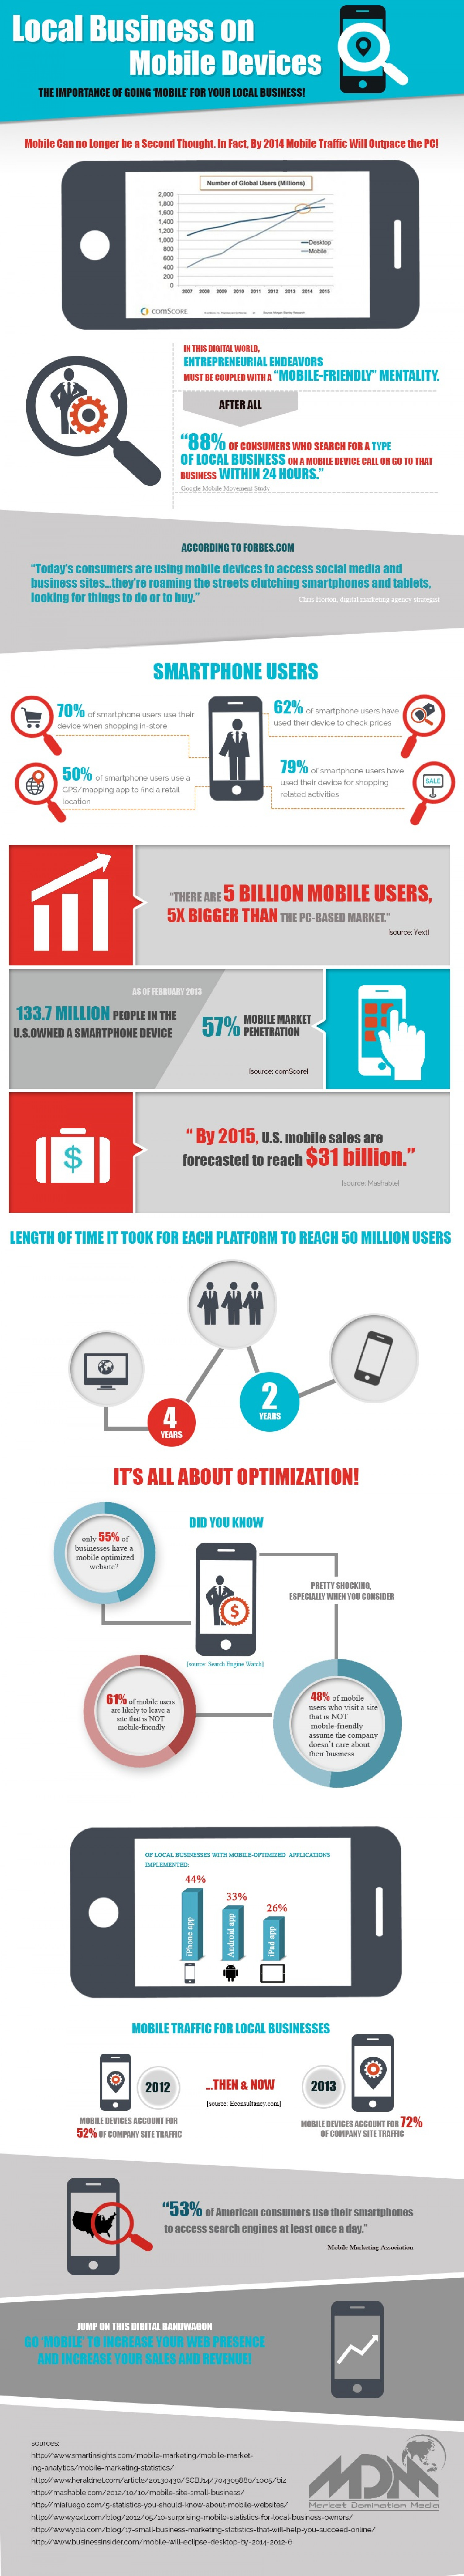 Why Your Business Needs To Go Mobile Infographic